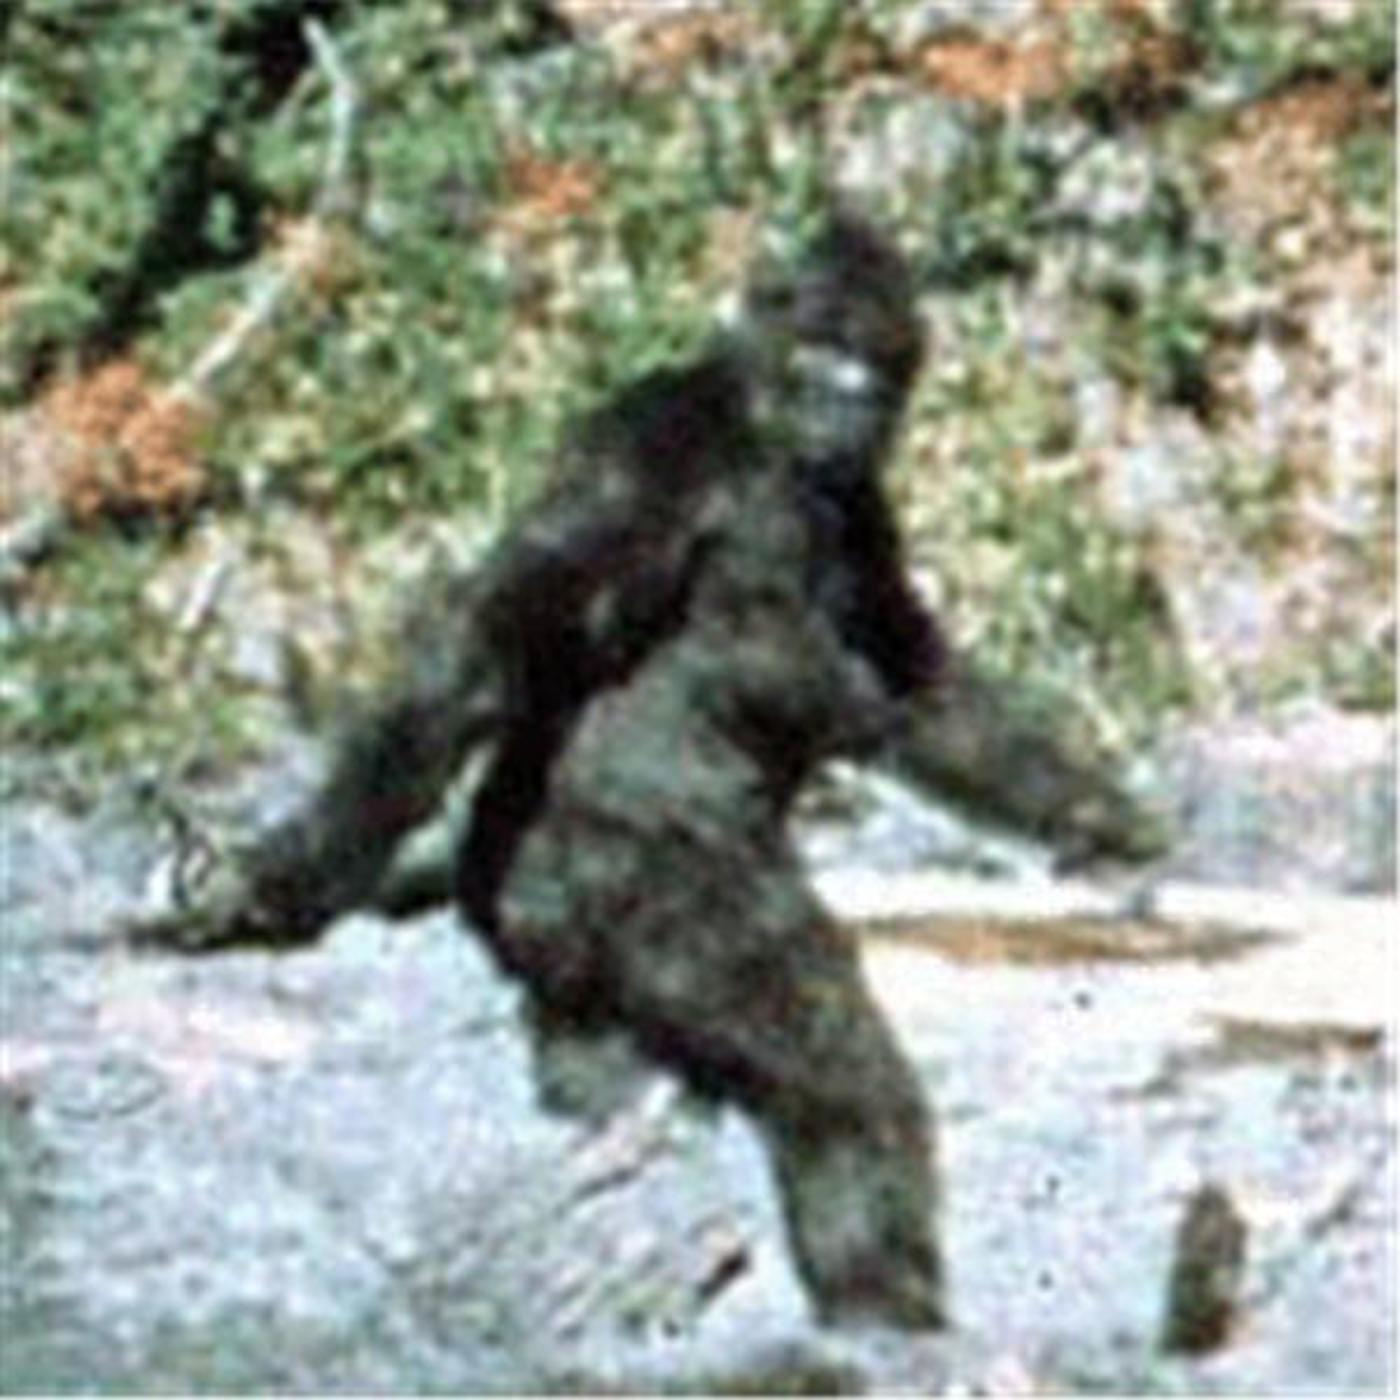 BIGFOOT GROUND ZERO - Michael Merchant Interview